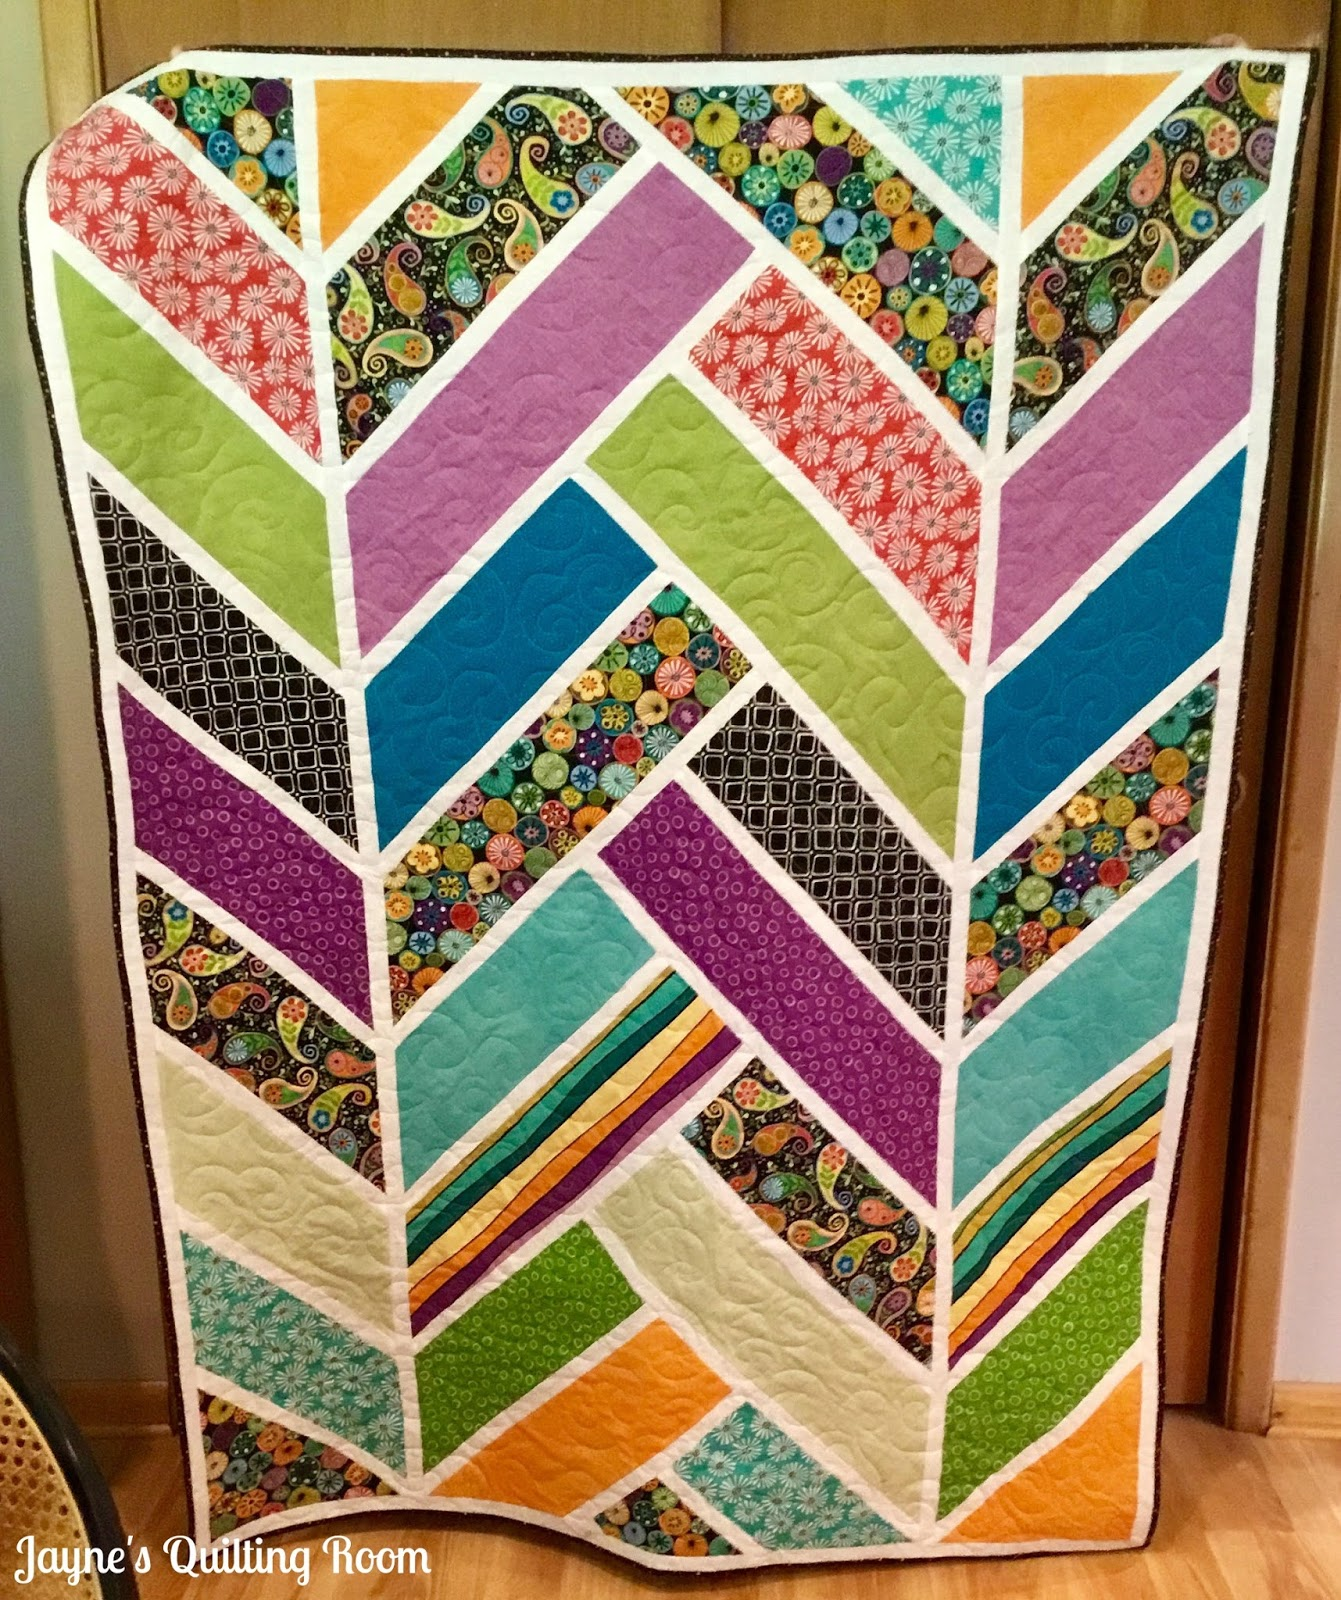 Jayne's Quilting Room: Projects from Claudia : quilt beginnings columbus - Adamdwight.com